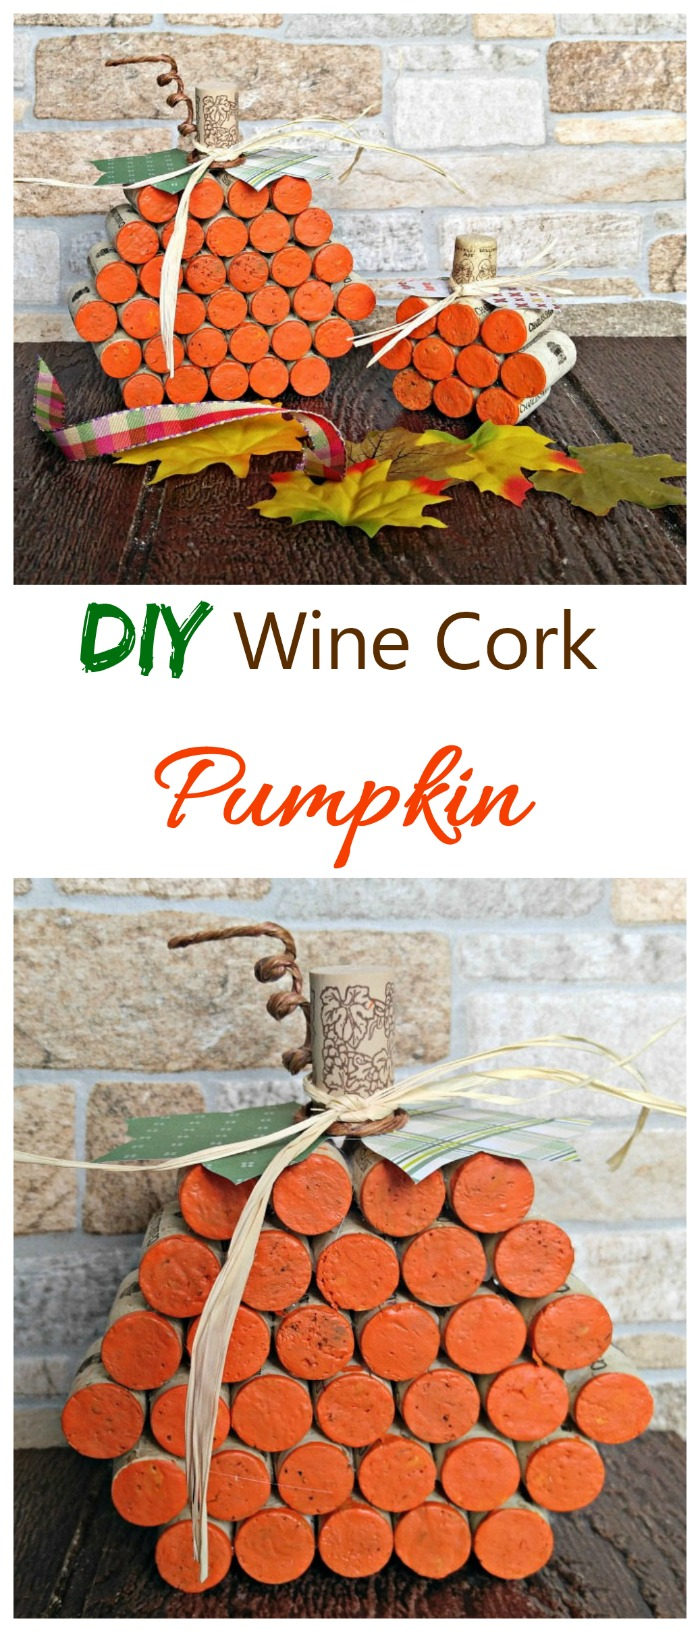 These DIY wine cork pumpkins are super easy to make and very festive. They look great in any fall vignette. #falldecor #diypumpkins